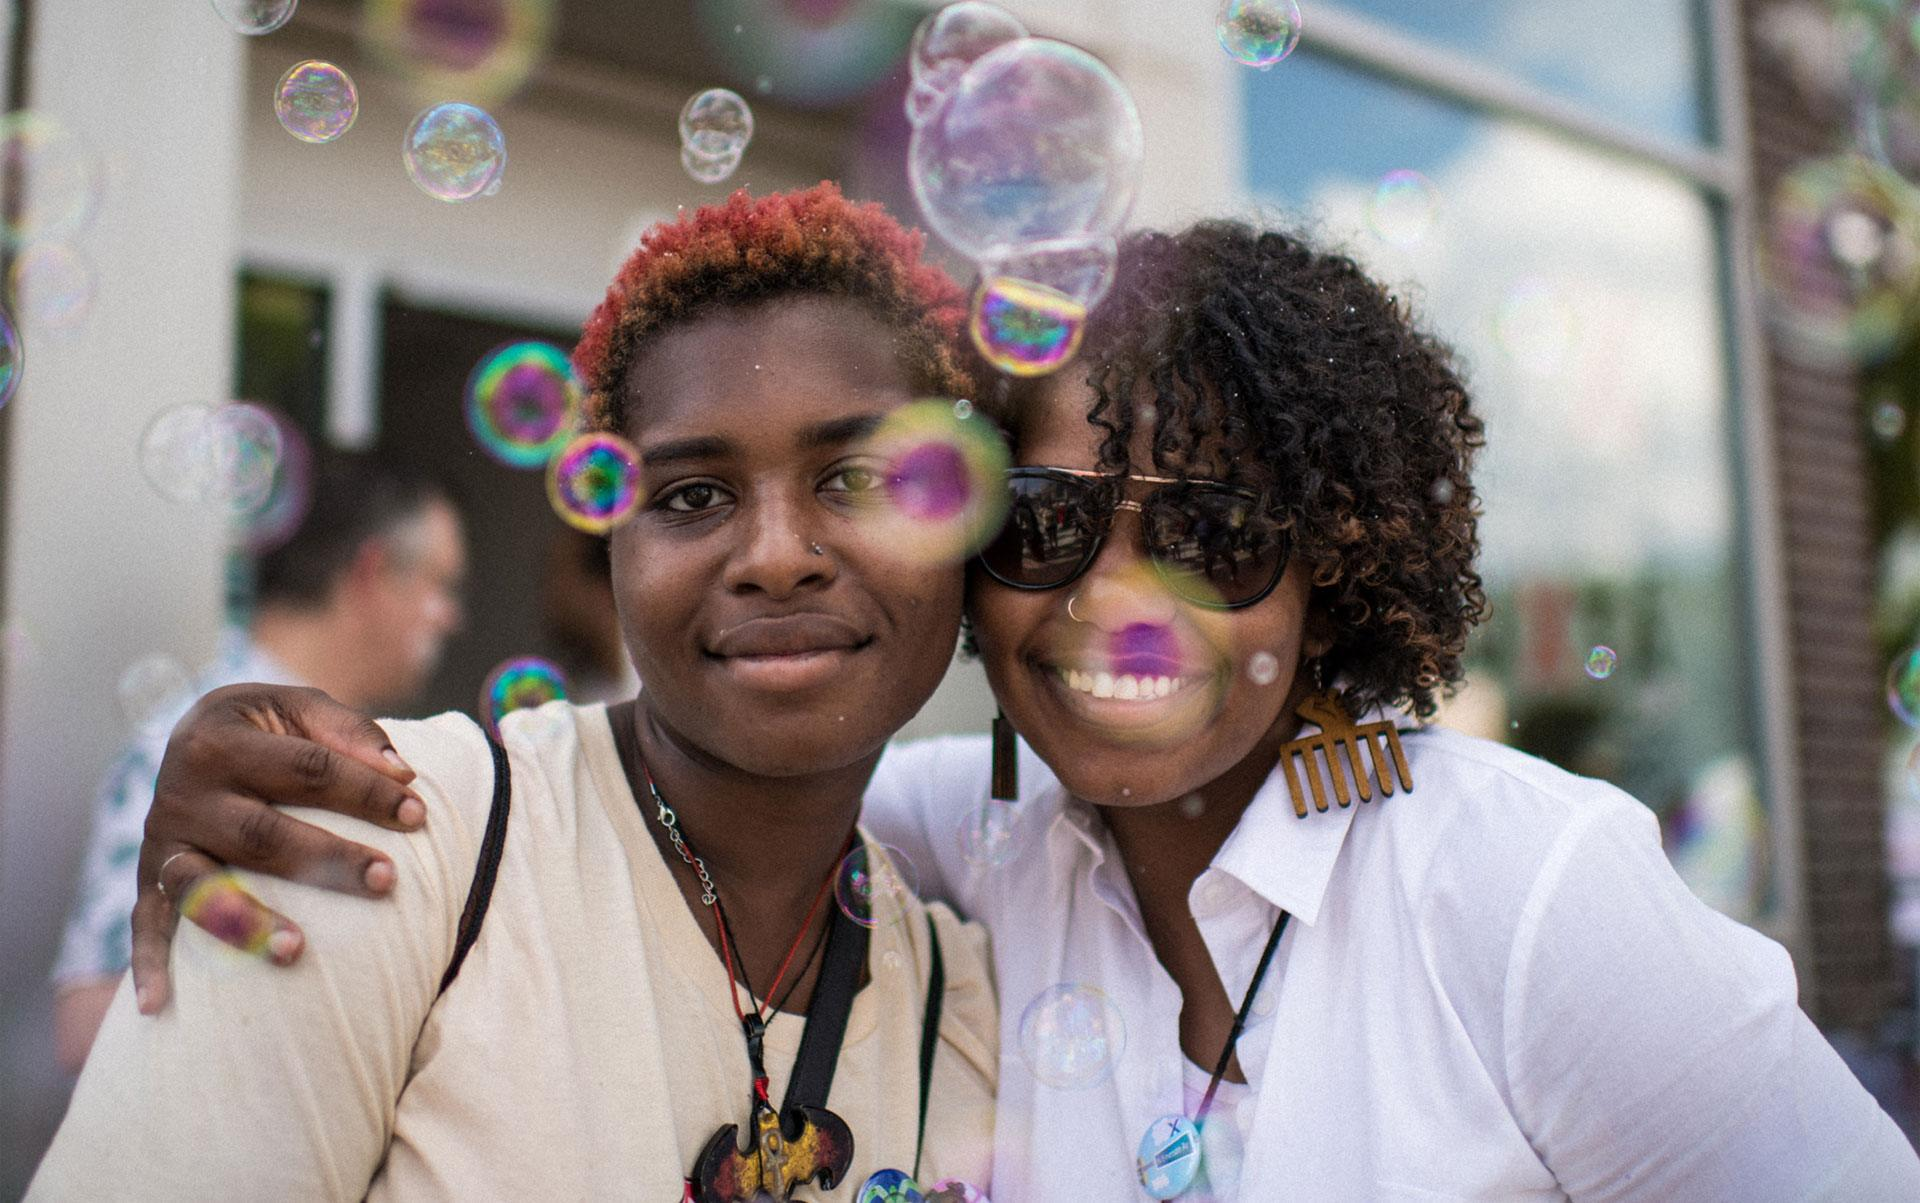 Two people embrace and smile directly at the camera. Bubbles are floating around them.